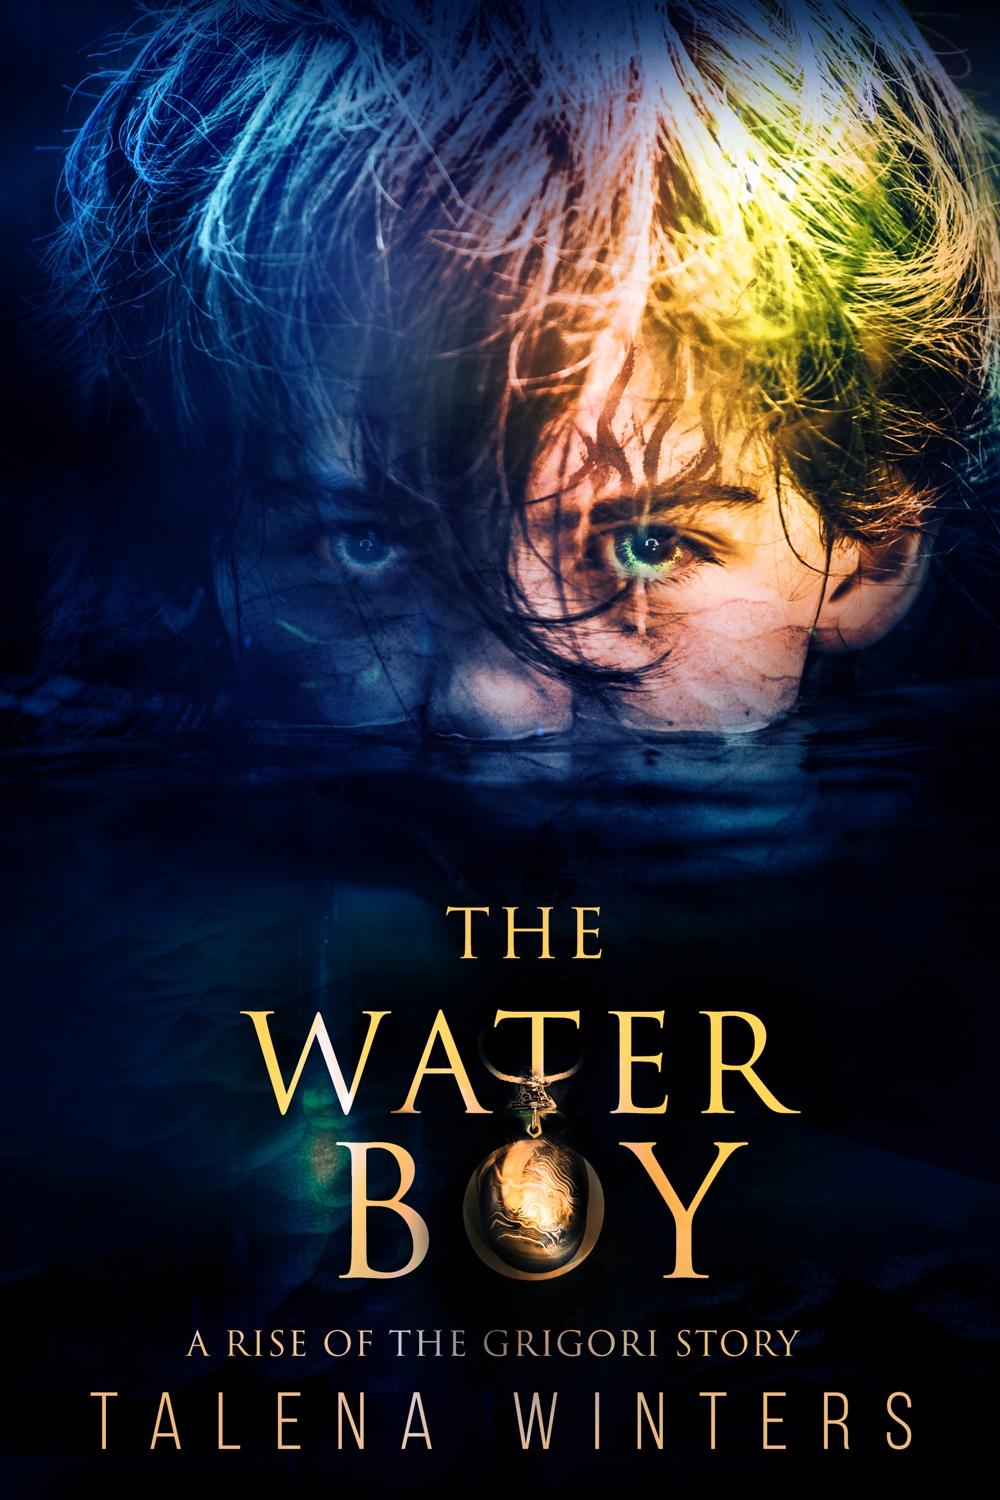 Where do you hide from yourself?    Zale Teague grew up thinking he was an ordinary boy—until the day he called lightning from the skies and caused an explosion with horrific results. Now, at only eleven, he is on the run to protect his loved ones from disaster. But can he ever outrun the demon within?    The Waterboy   is a prequel novella to the thrilling new young adult fantasy series  Rise of the Grigori . Free to newsletter subscribers. Learn more at  www.talenawinters.com/waterboy .